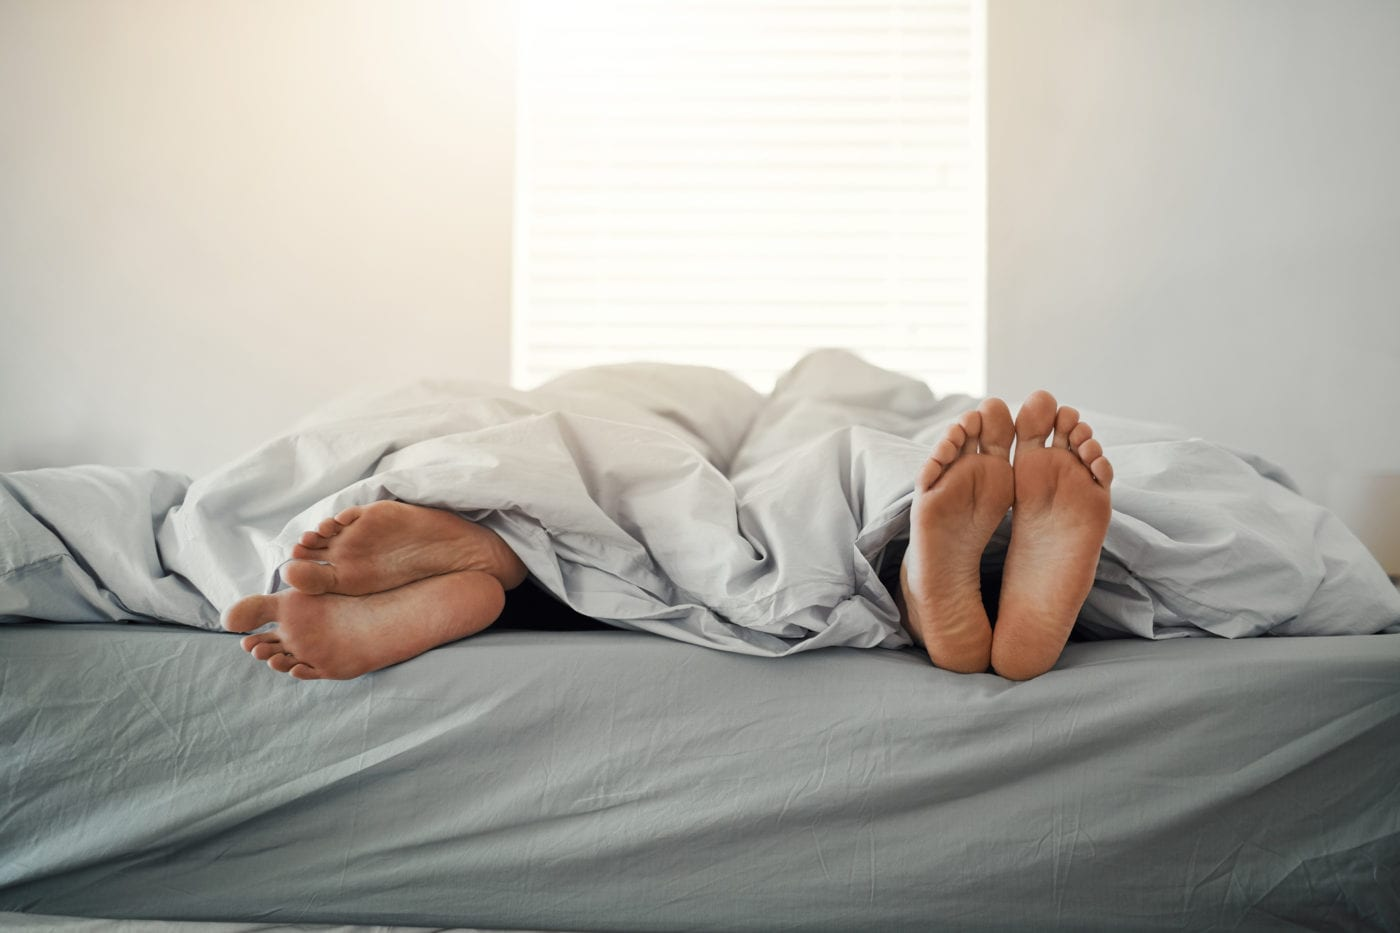 Man Soils Blankets In Protest After Wife Denies Him S_ex